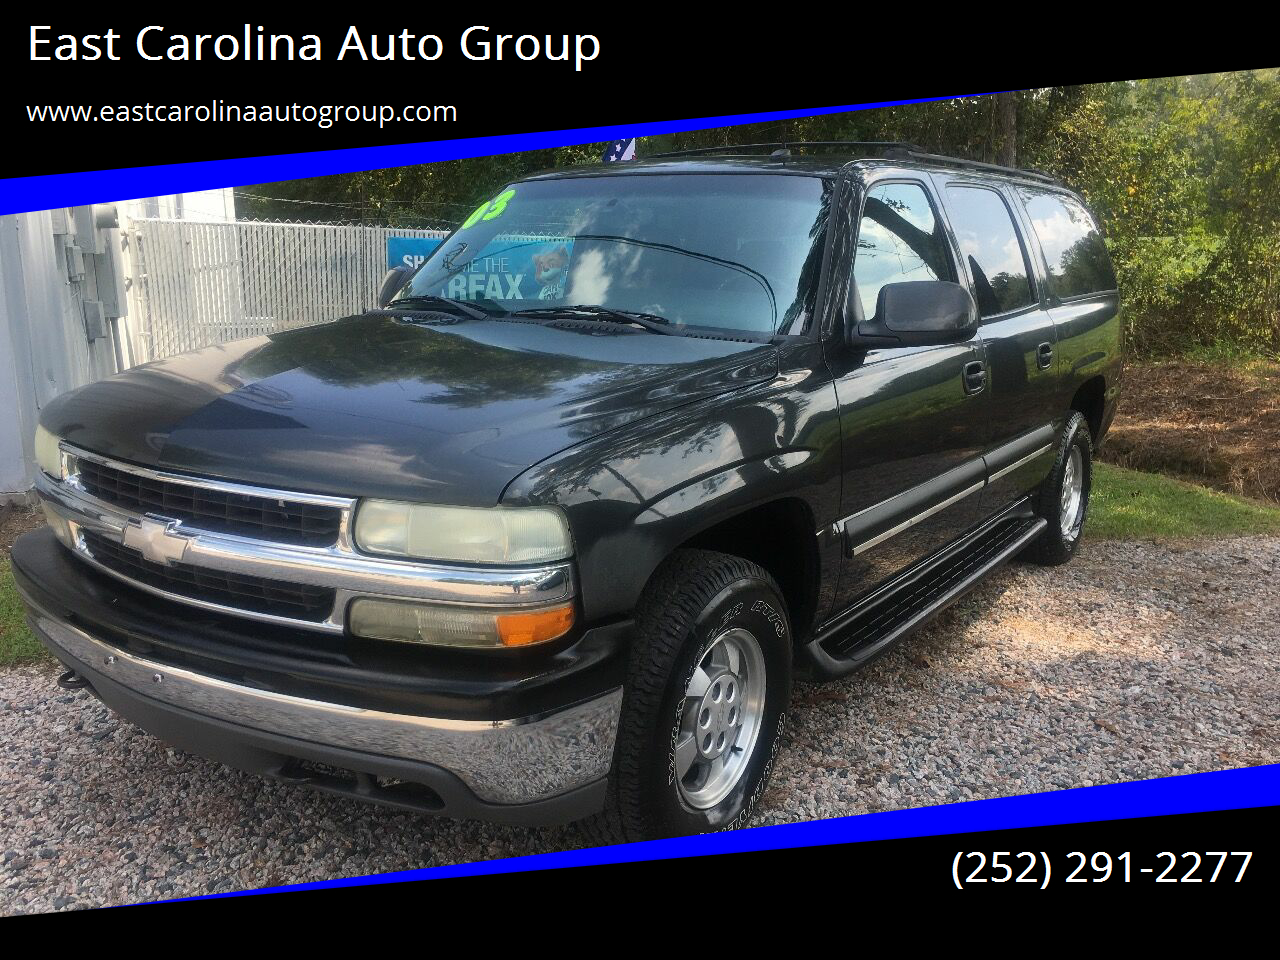 used 2003 chevrolet suburban for sale carsforsale com used 2003 chevrolet suburban for sale